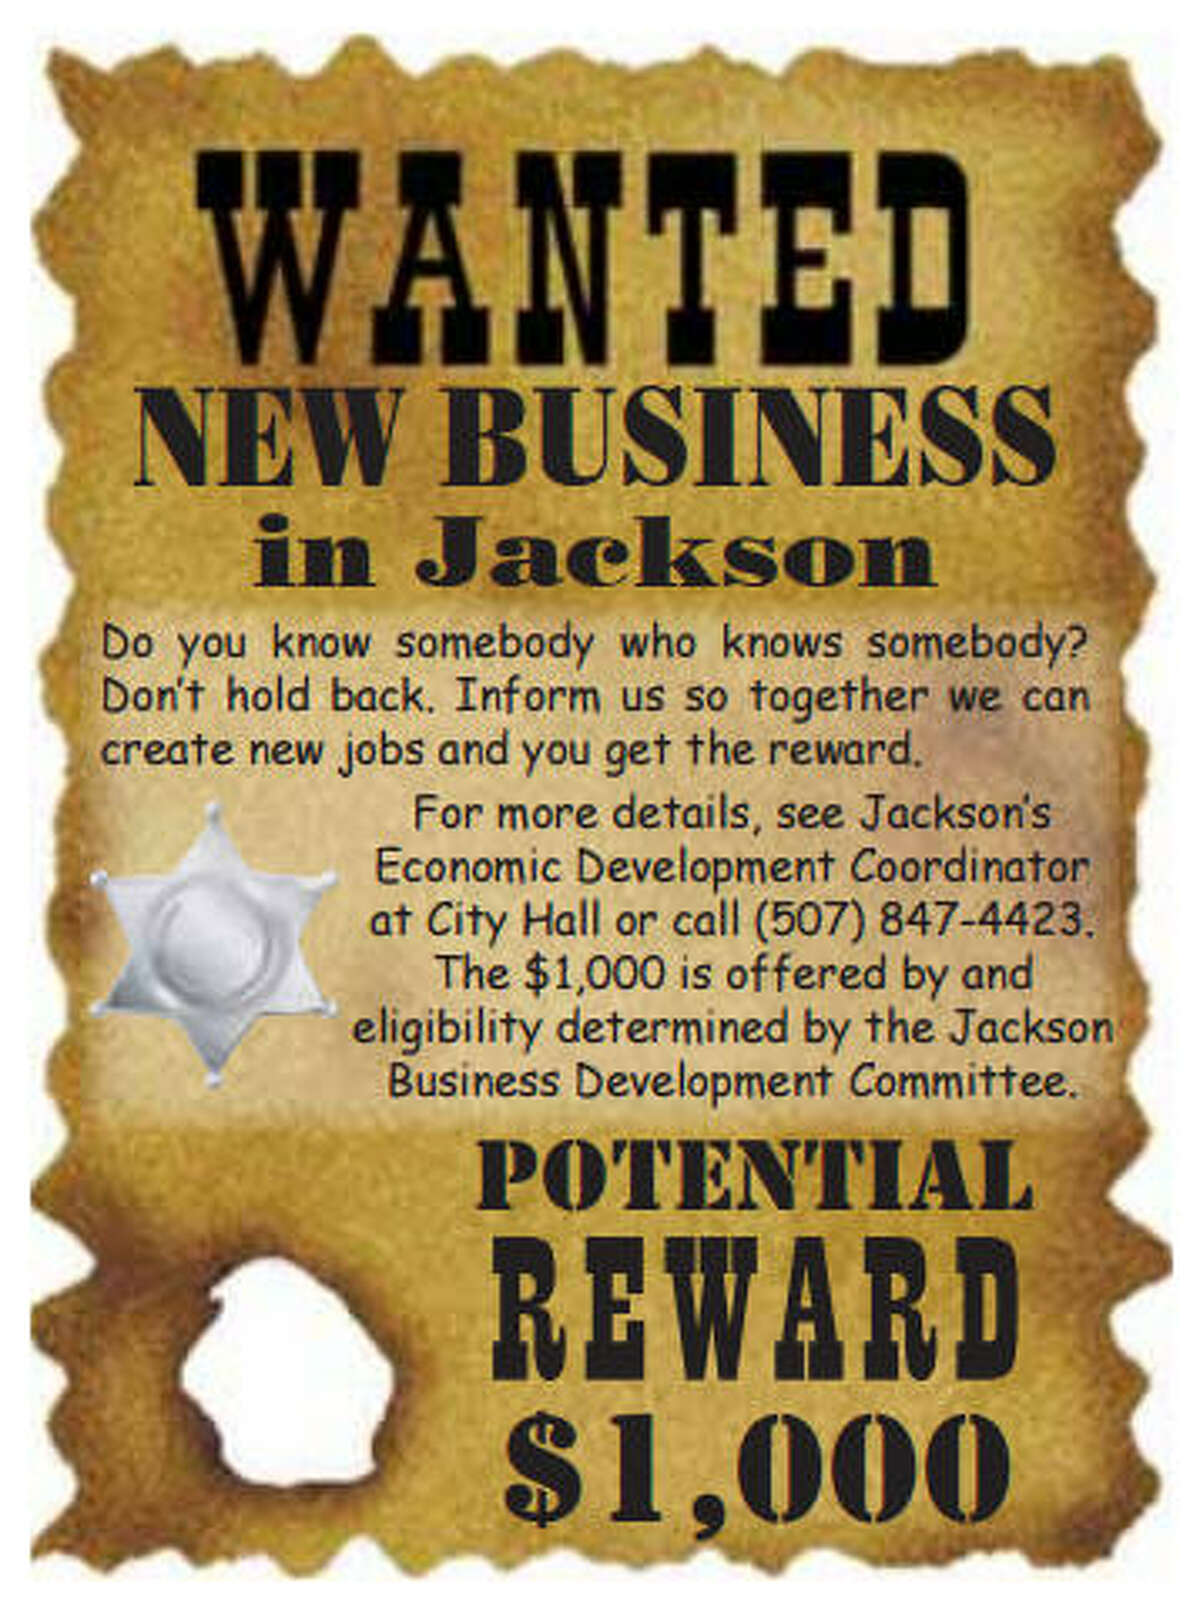 Trolling for businesses The Jackson, Minn., Chamber of Commerce sought out new businesses so fervently, they advertised for it in their visitor's guide. They got a response from a famous native.